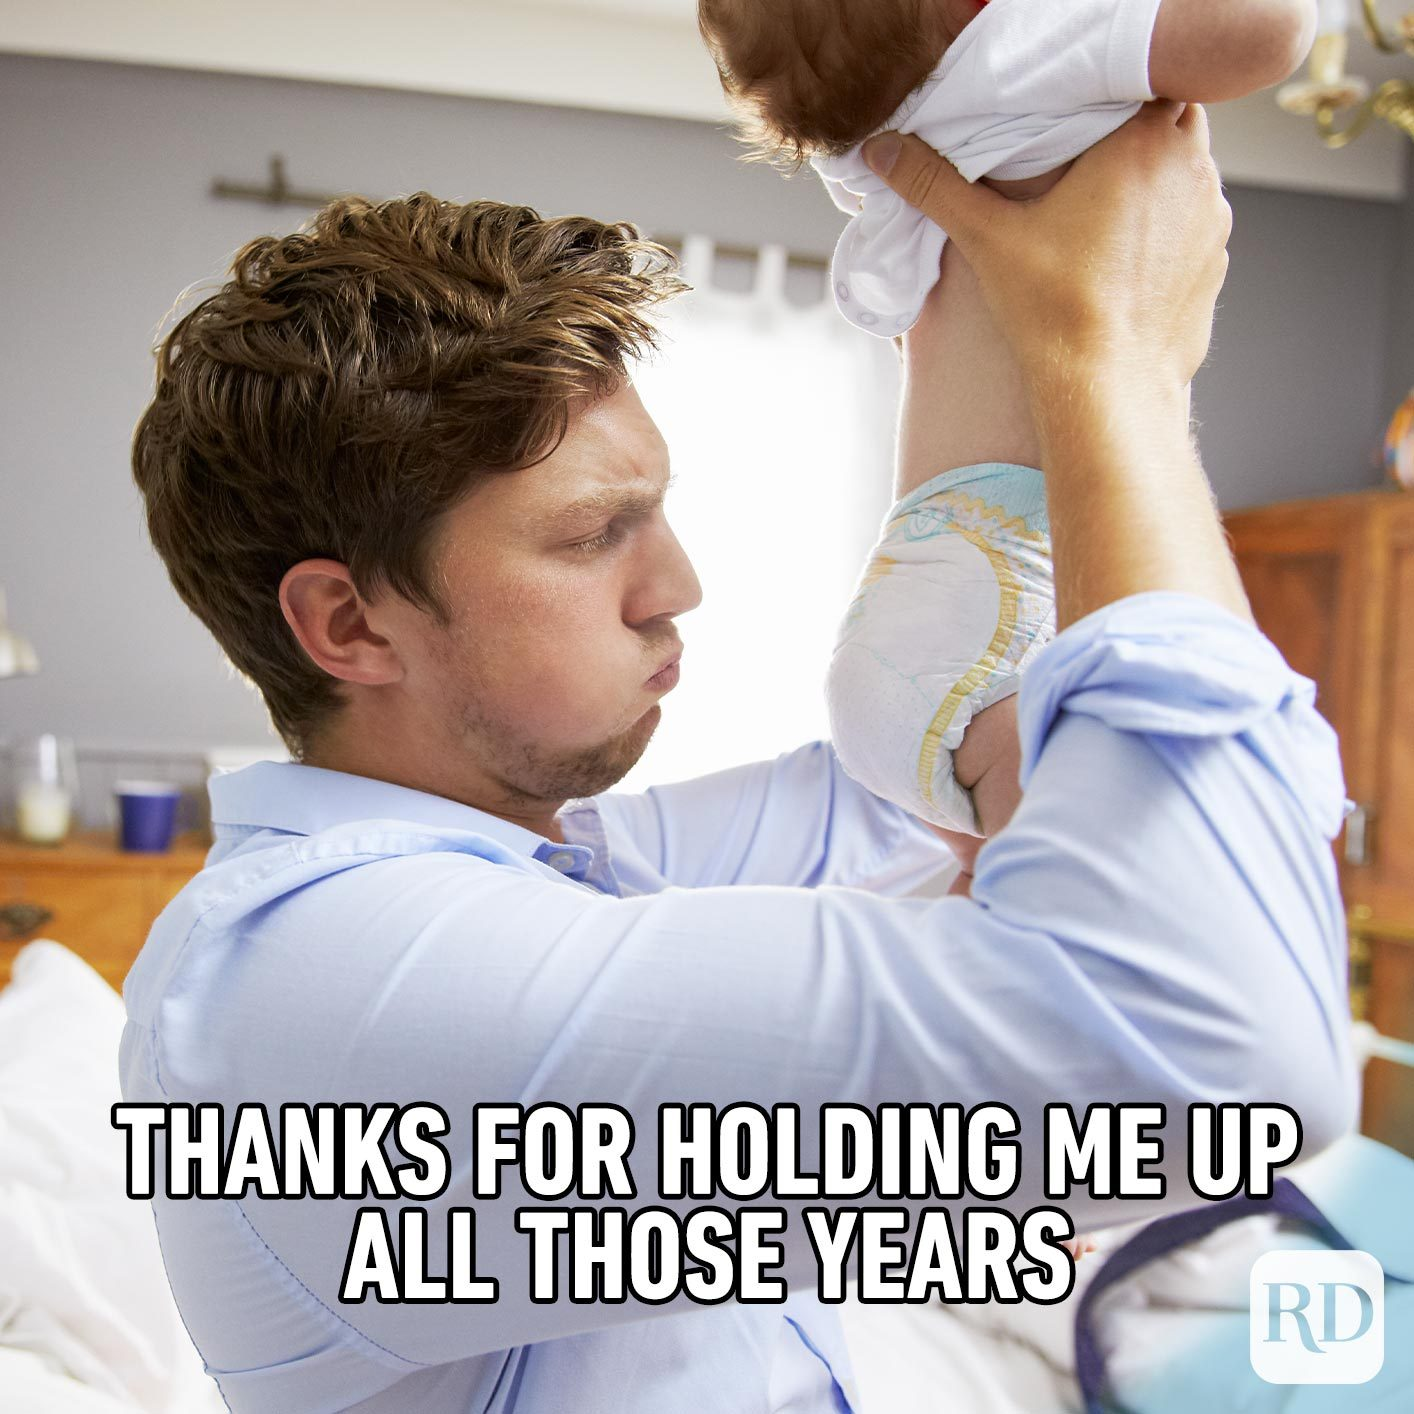 Father sniffing dirty diaper. Meme text: Thanks for holding me up all those years